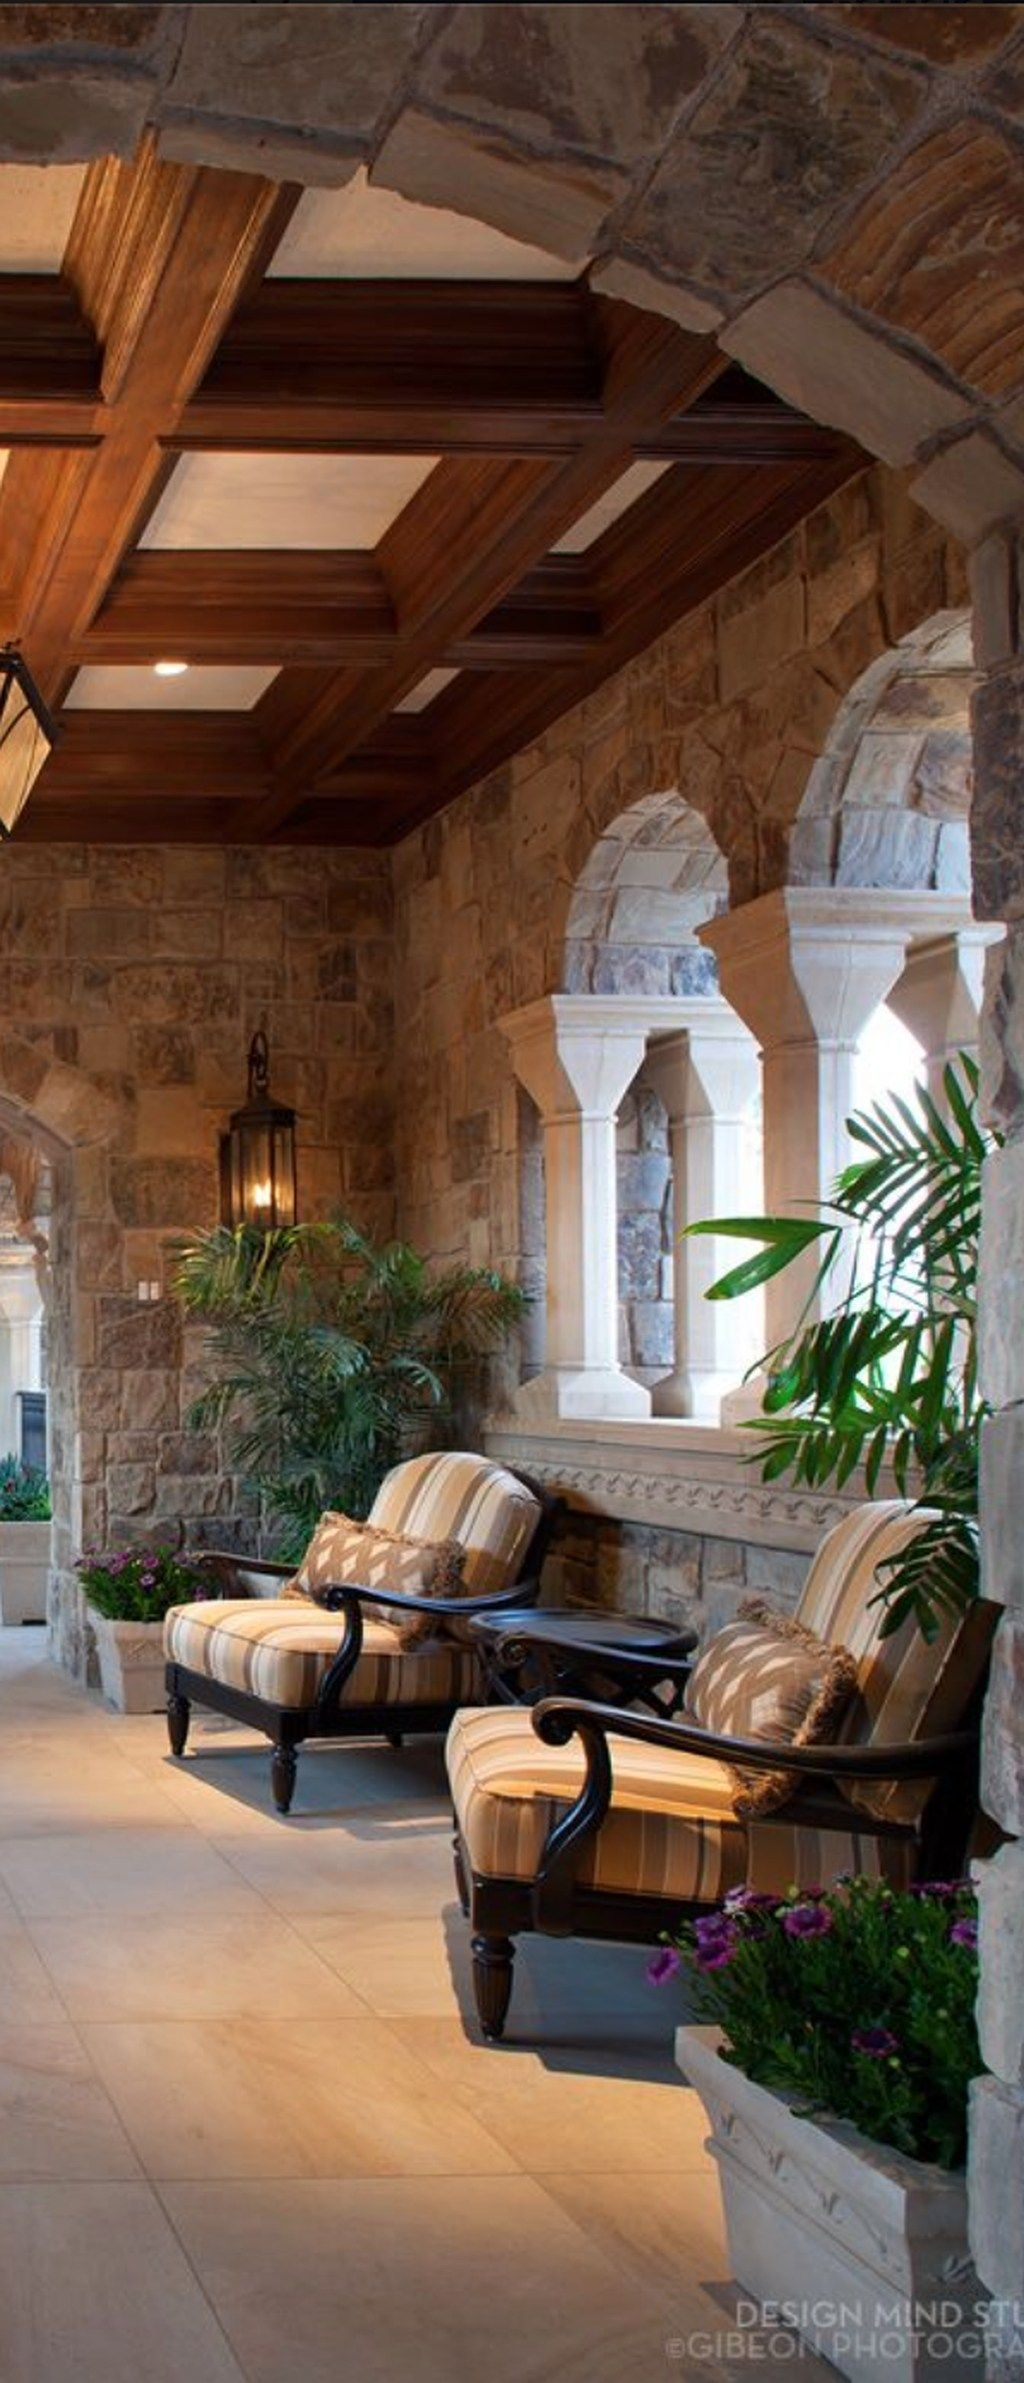 12 Inspirations For Home Improvement With Spanish Home Decorating Ideas: 48 Elegant Tuscan Home Decor Ideas You Will Love